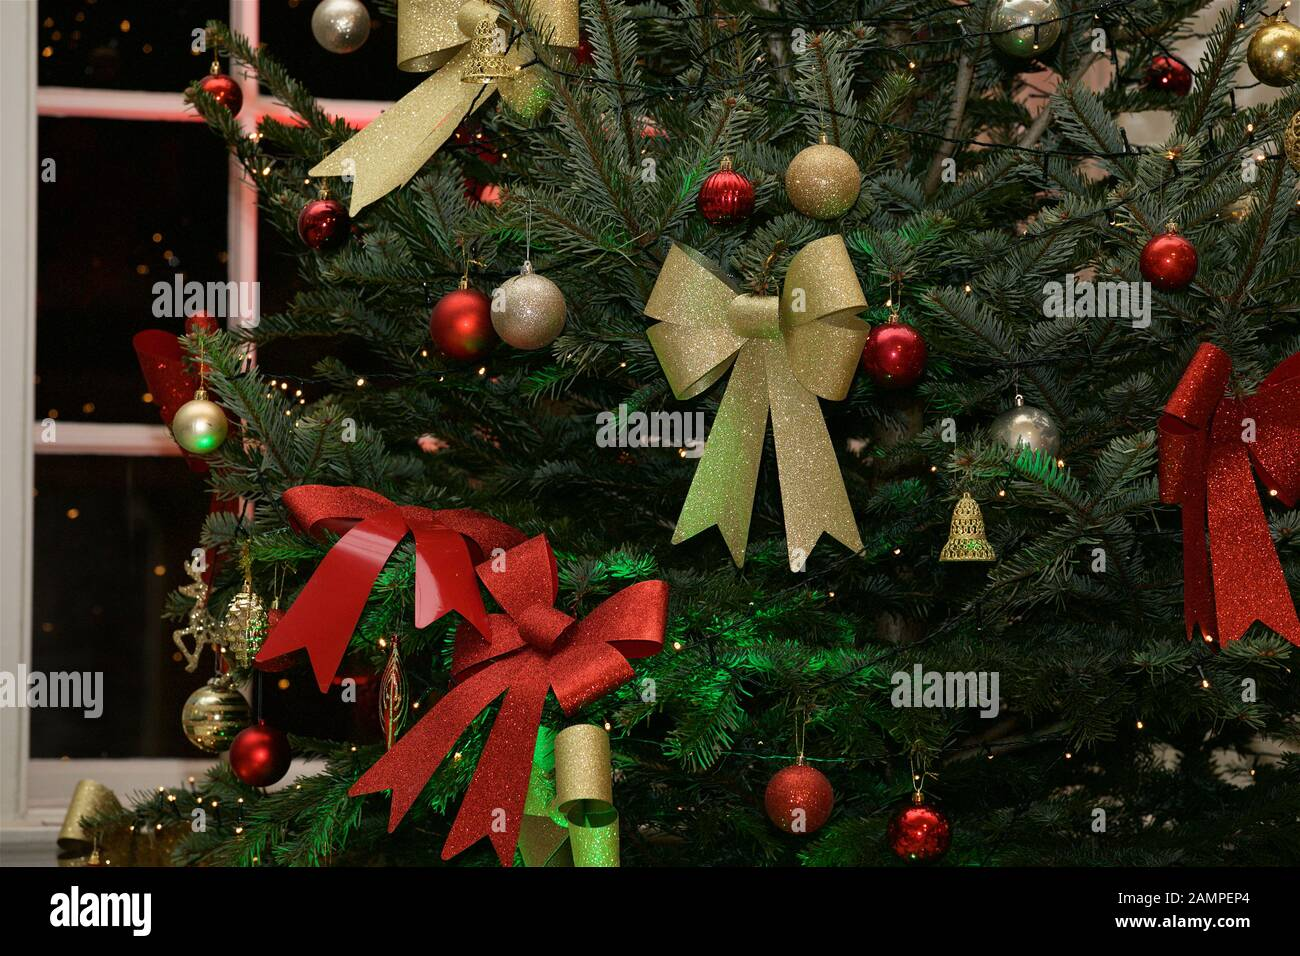 Christmas Background Close Up Shot Of A Decorated Christmas Tree With Ribbons And Baubles Stock Photo Alamy